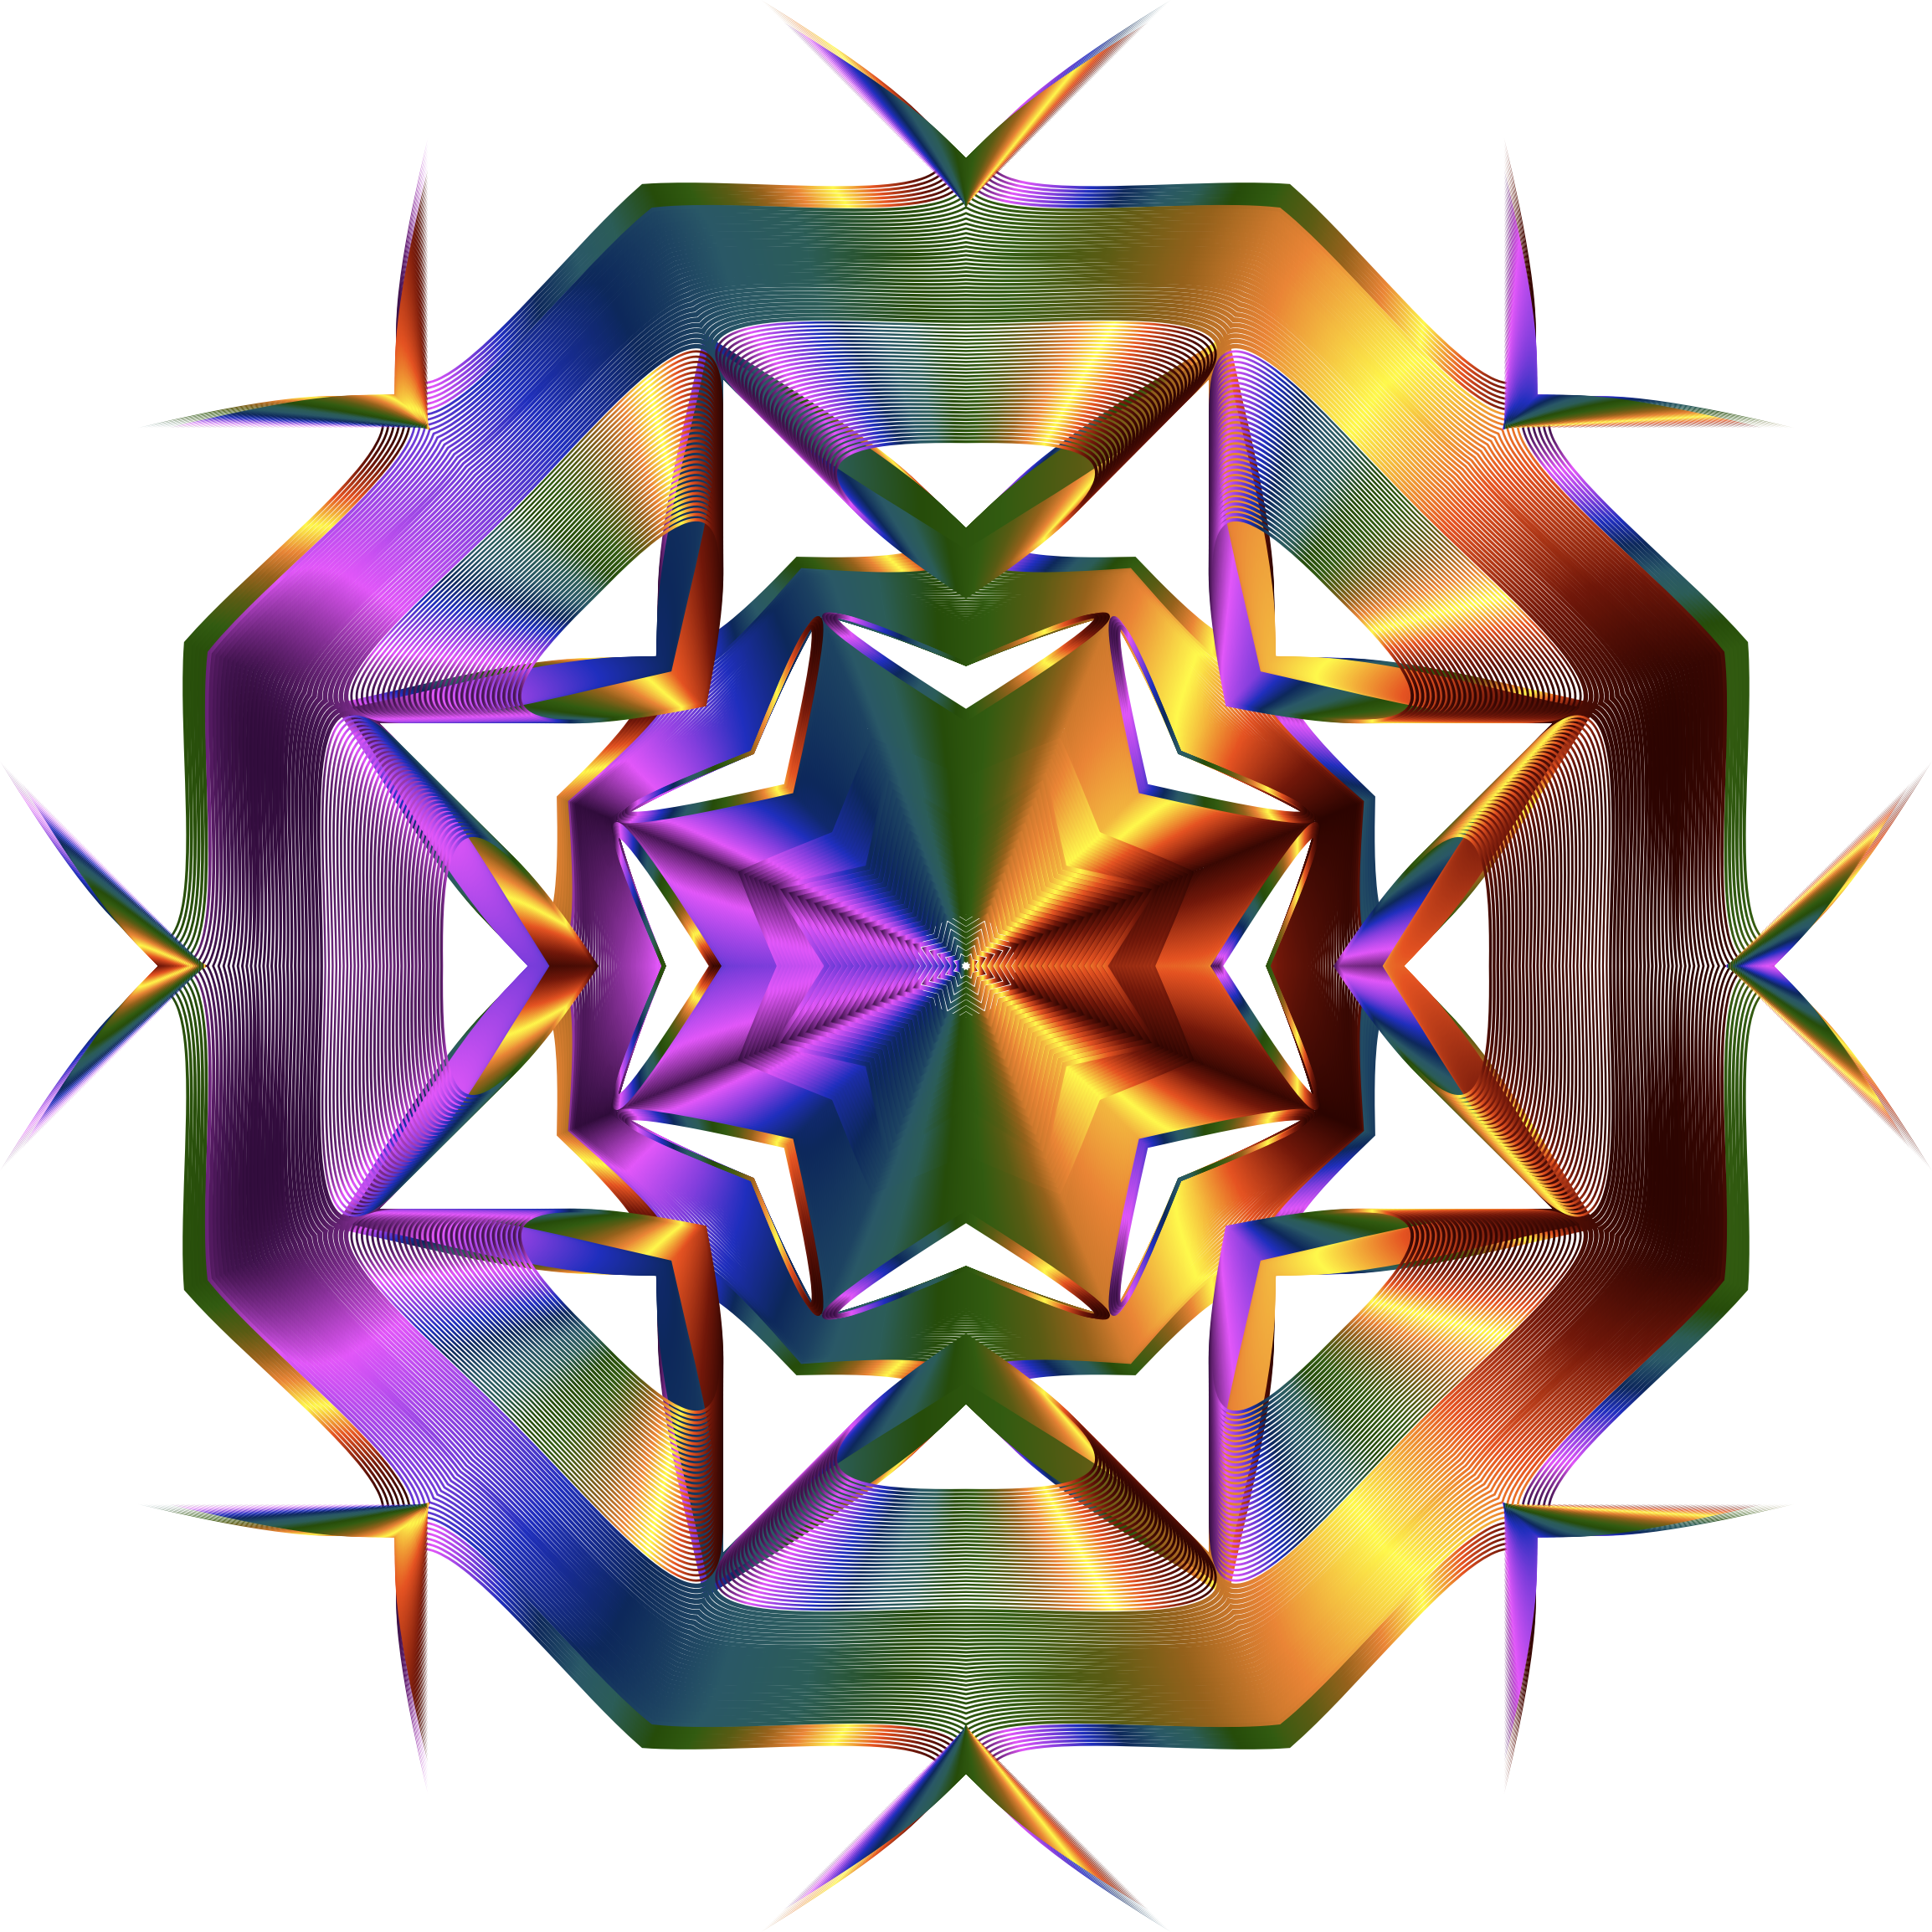 Prismatic Star Line Art 5 Variation 3 No Background by GDJ